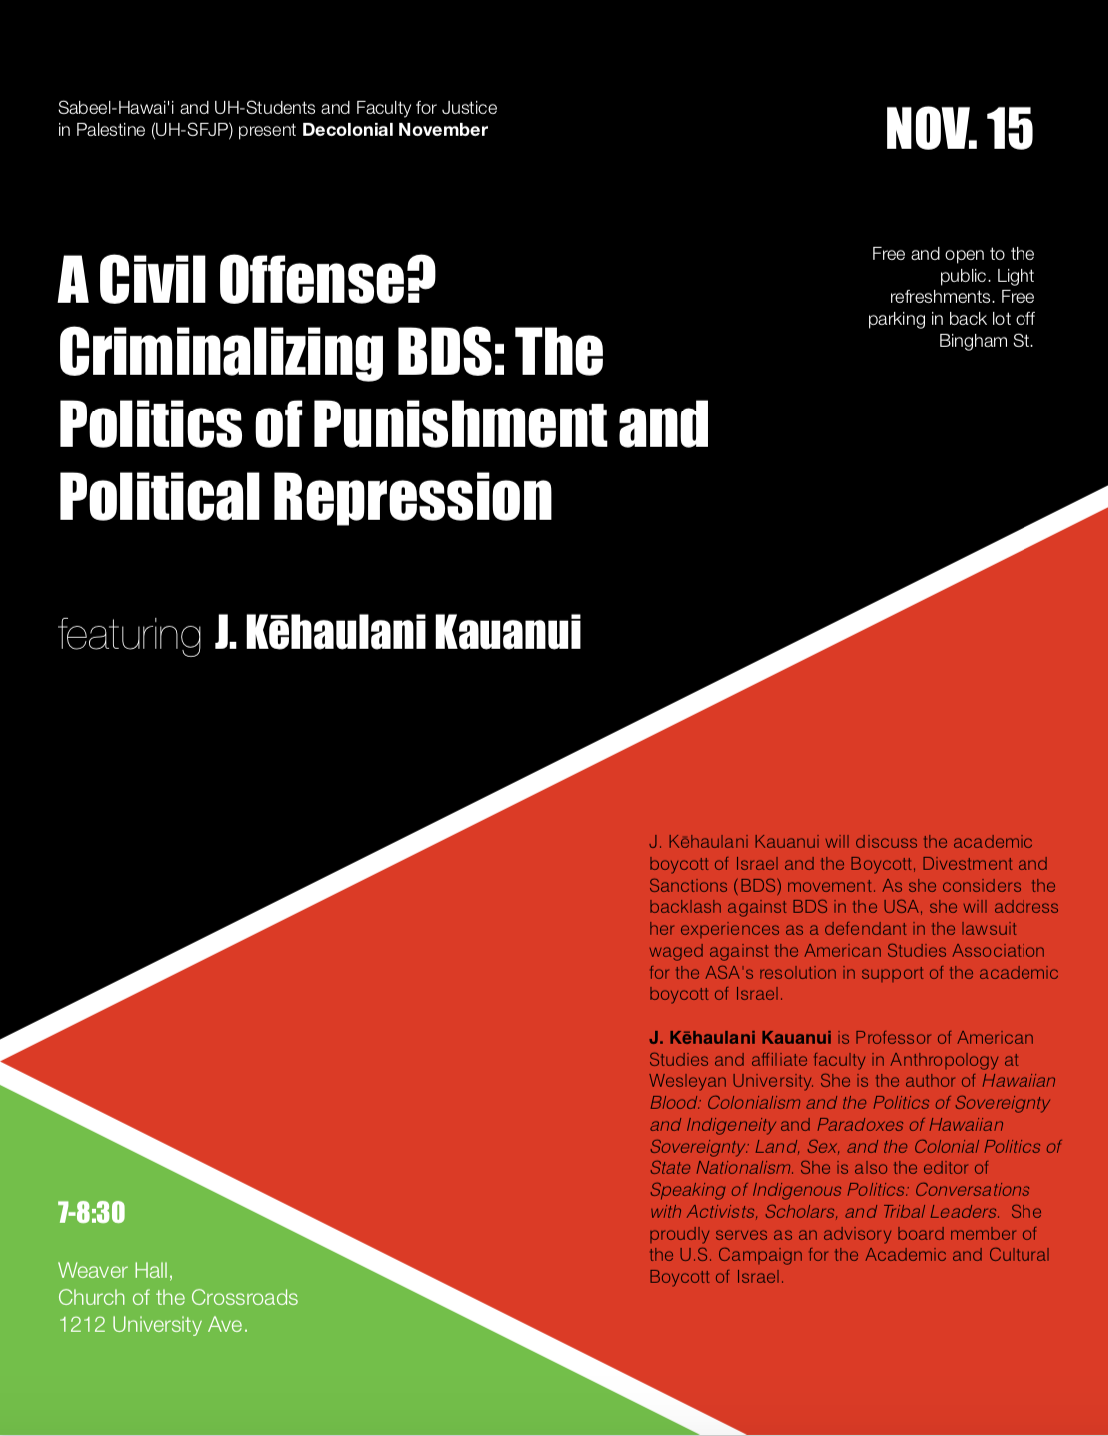 A Civil Offense? Criminalizing BDS: The Politics of Punishment and Political Repression, J. Kēhaulani Kauanui